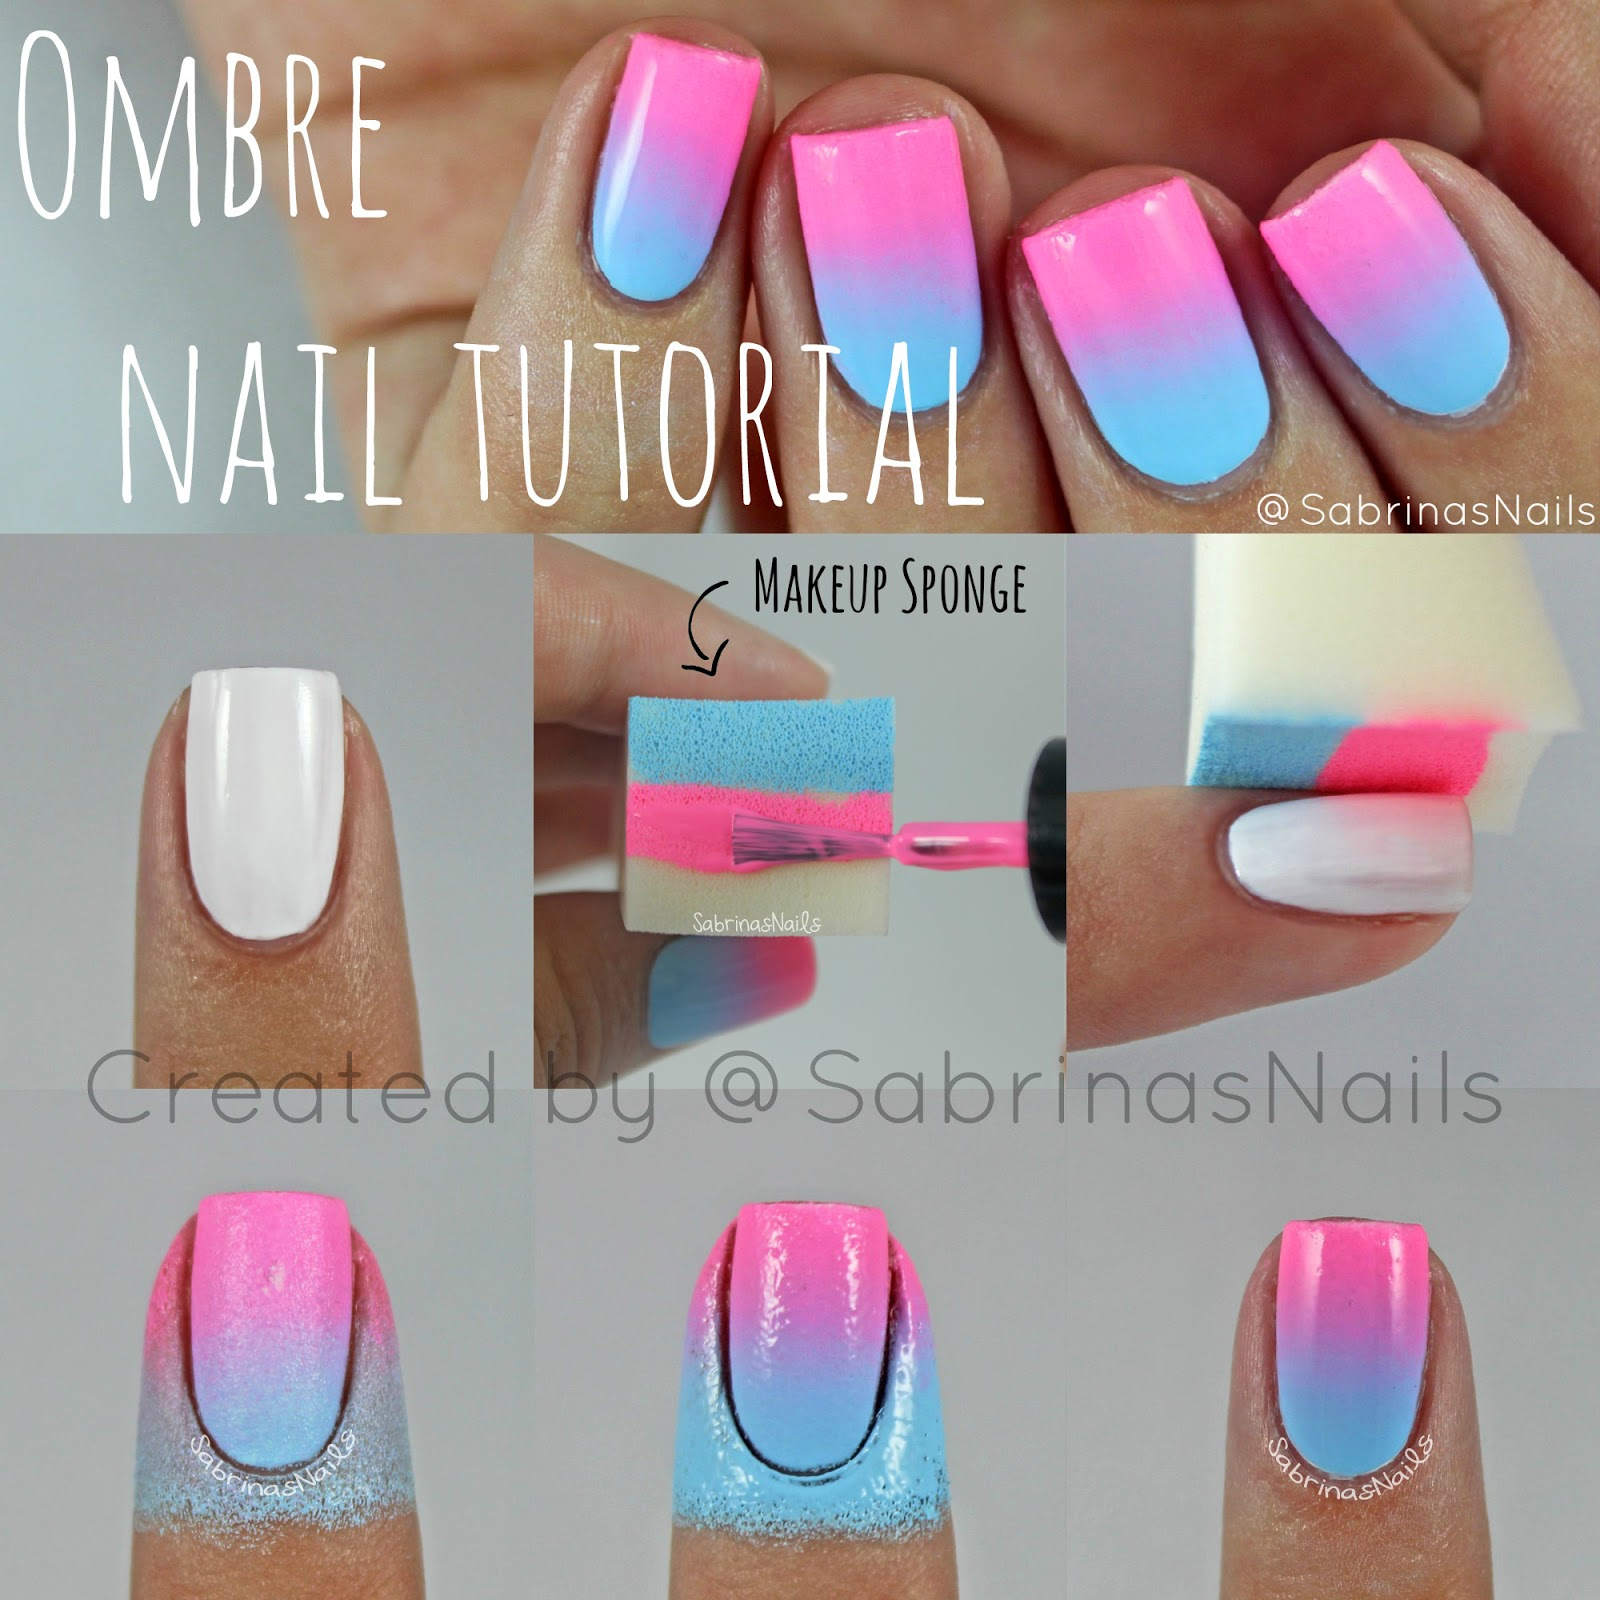 Sabrinas nails ombre nail tutorial ombre nail tutorial prinsesfo Image collections